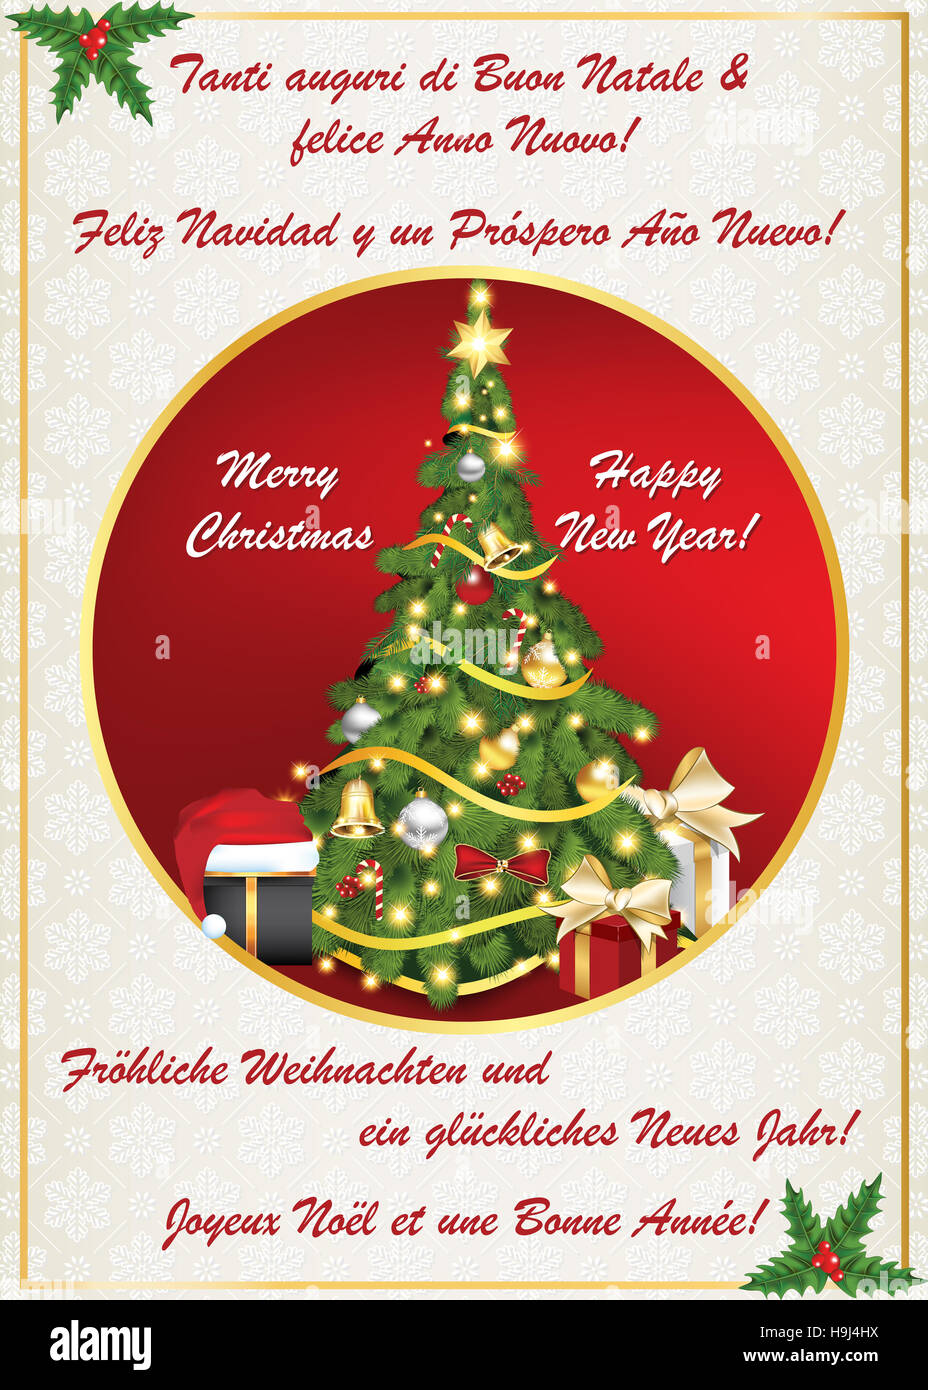 new year greeting card 2017 in many languages text translation merry christmas and happy new year in frenchgermandutch